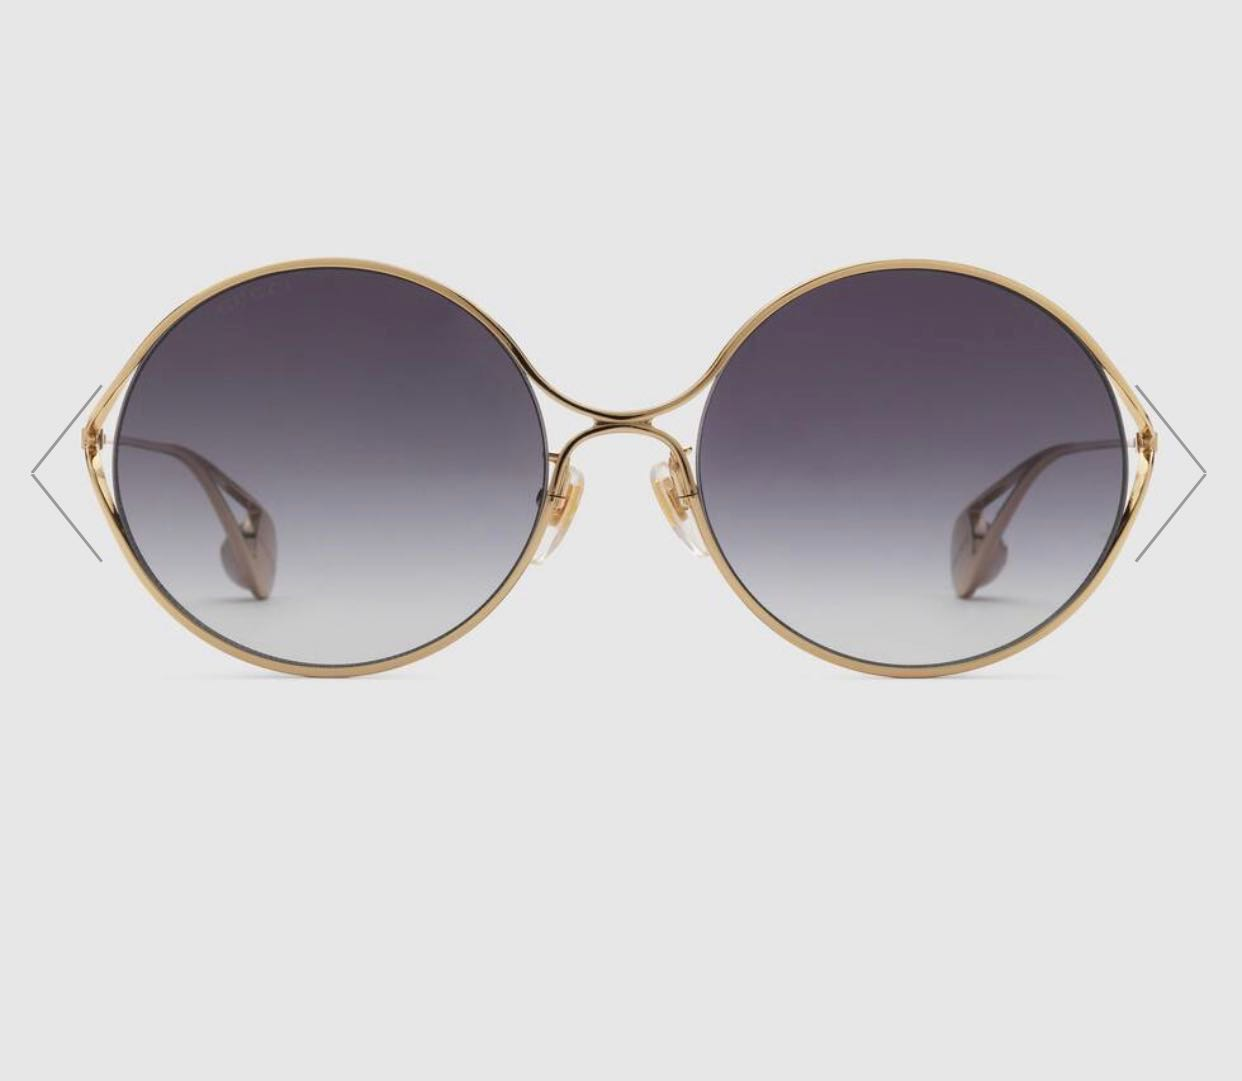 eef1d2d39 Gucci Round Frame Metal Sunglasses, Women's Fashion, Accessories ...